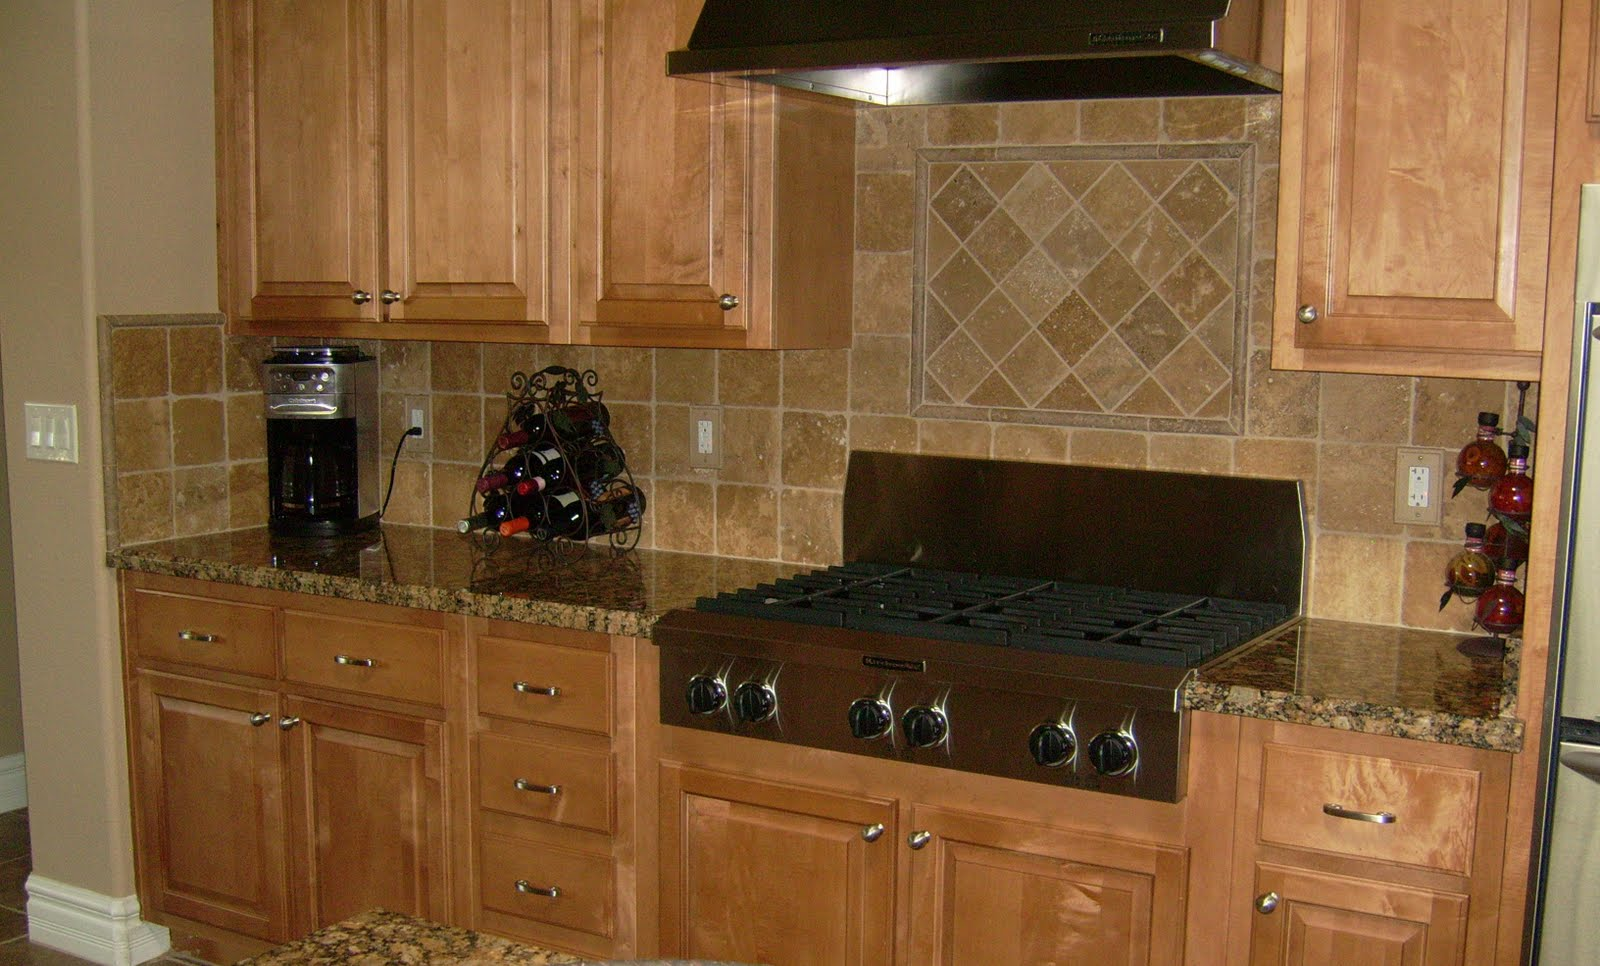 Pictures kitchen backsplash ideas Backsplash photos kitchen ideas